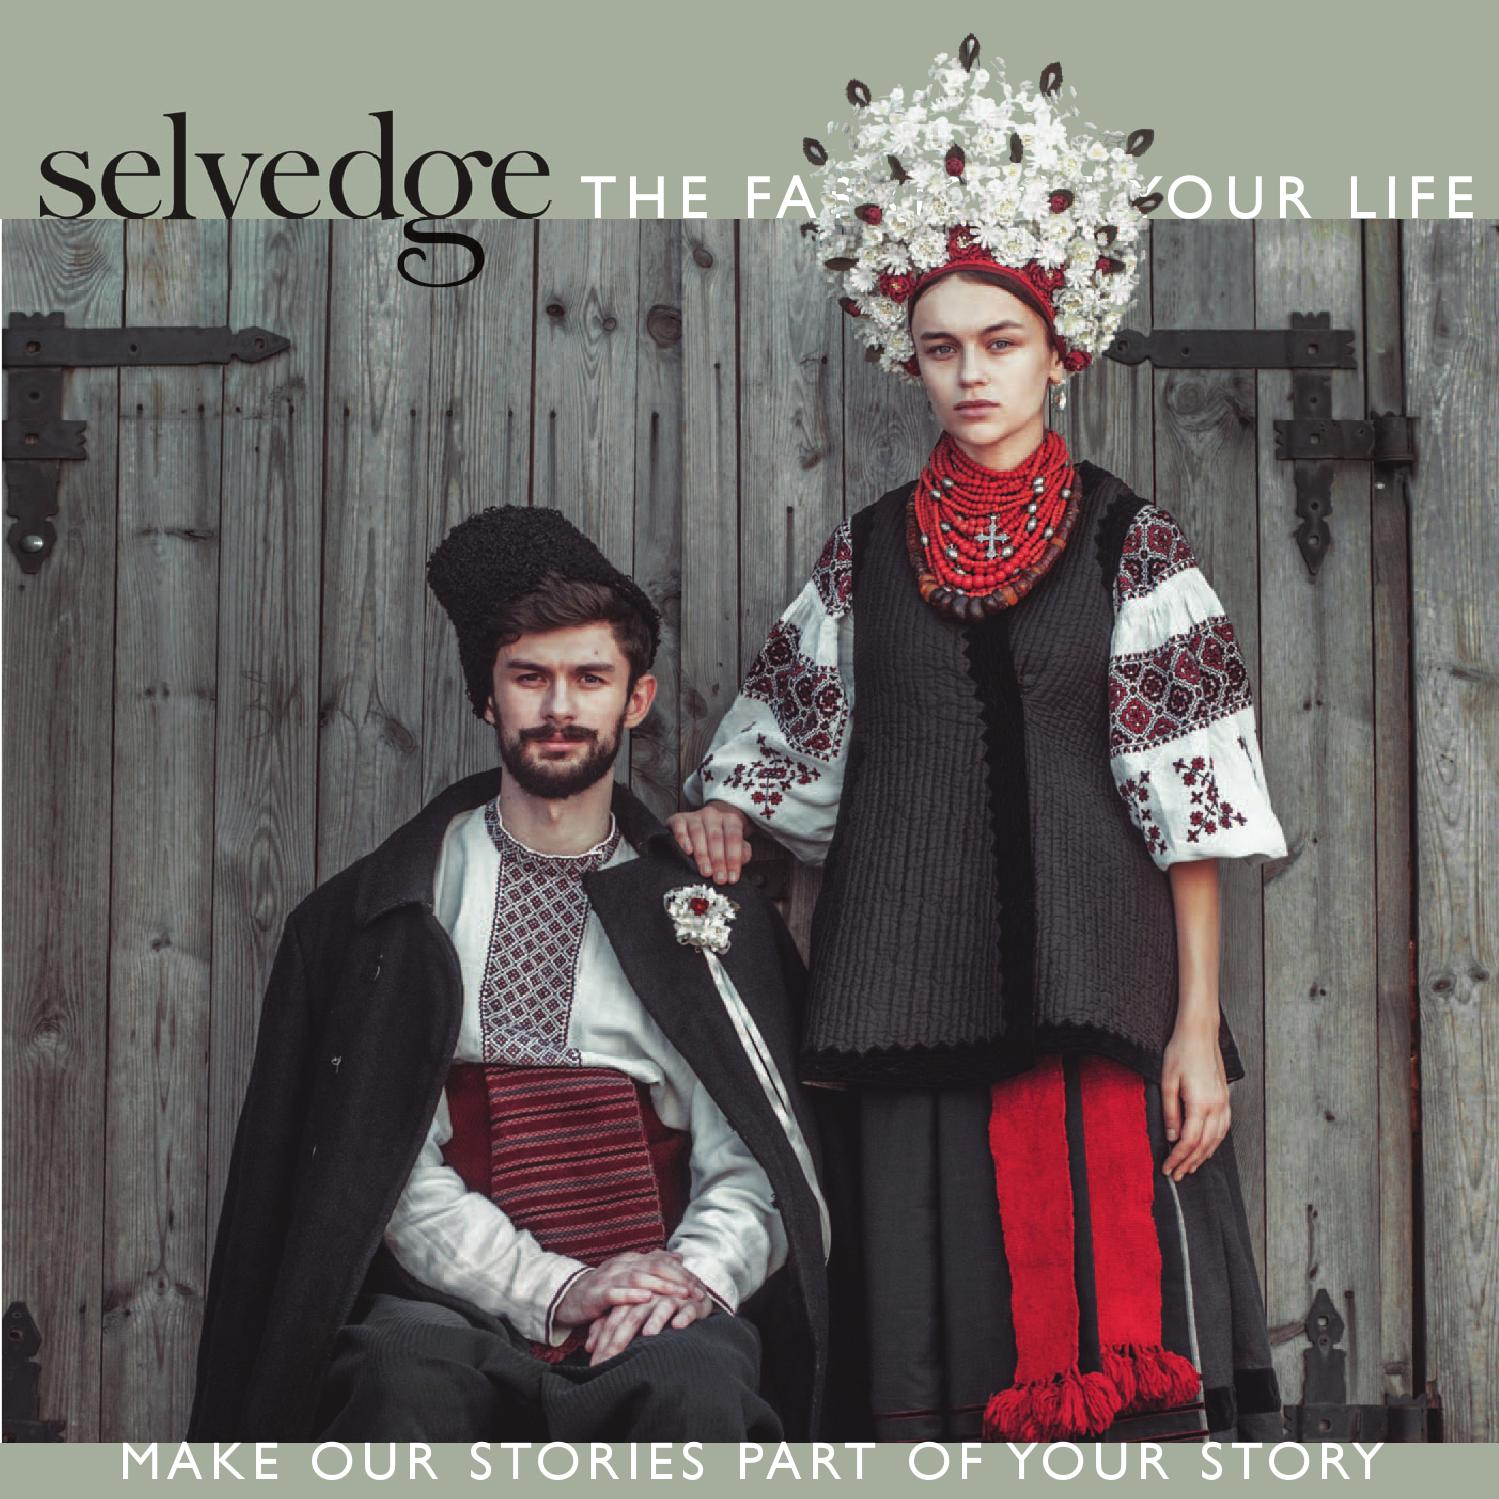 17bee309bcd 74 Wild by Selvedge Magazine - issuu